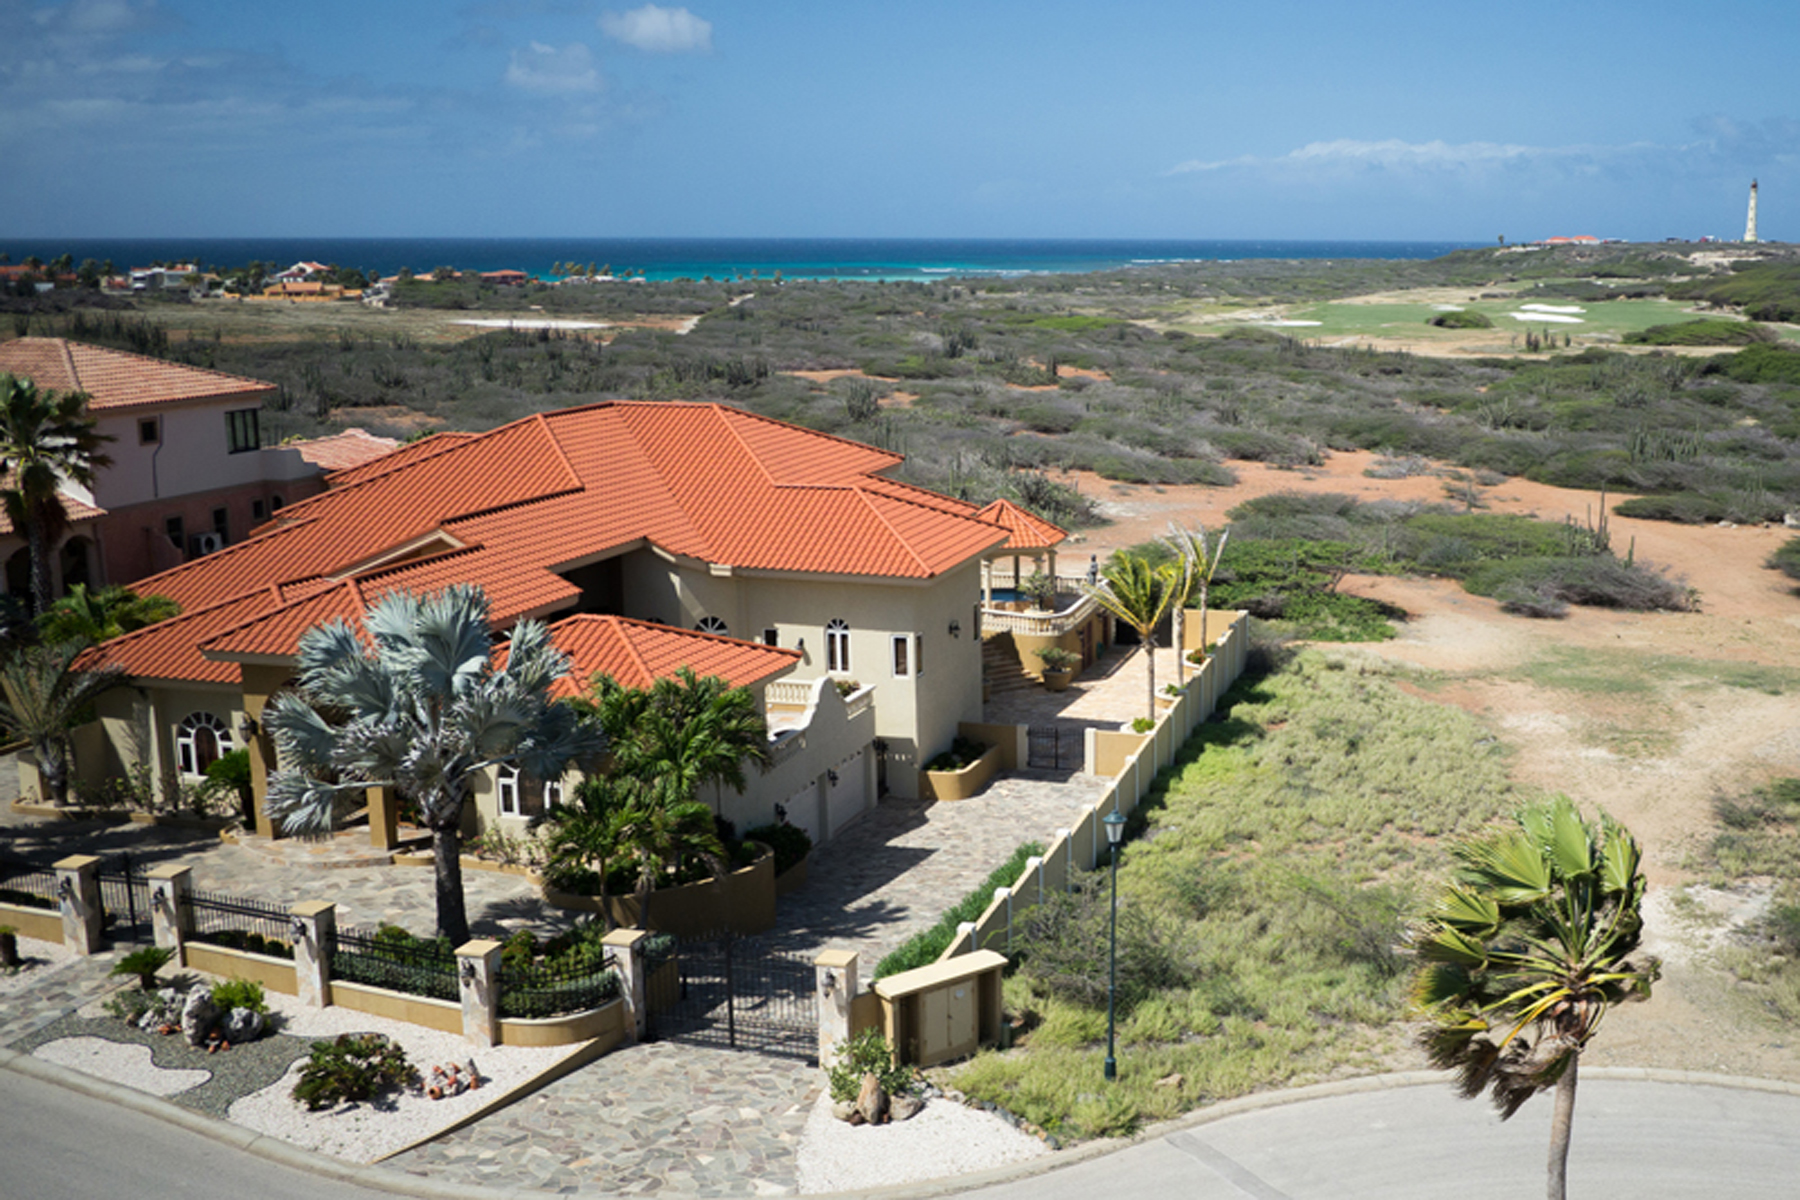 Single Family Home for Sale at La Colina 15 Malmok, Aruba